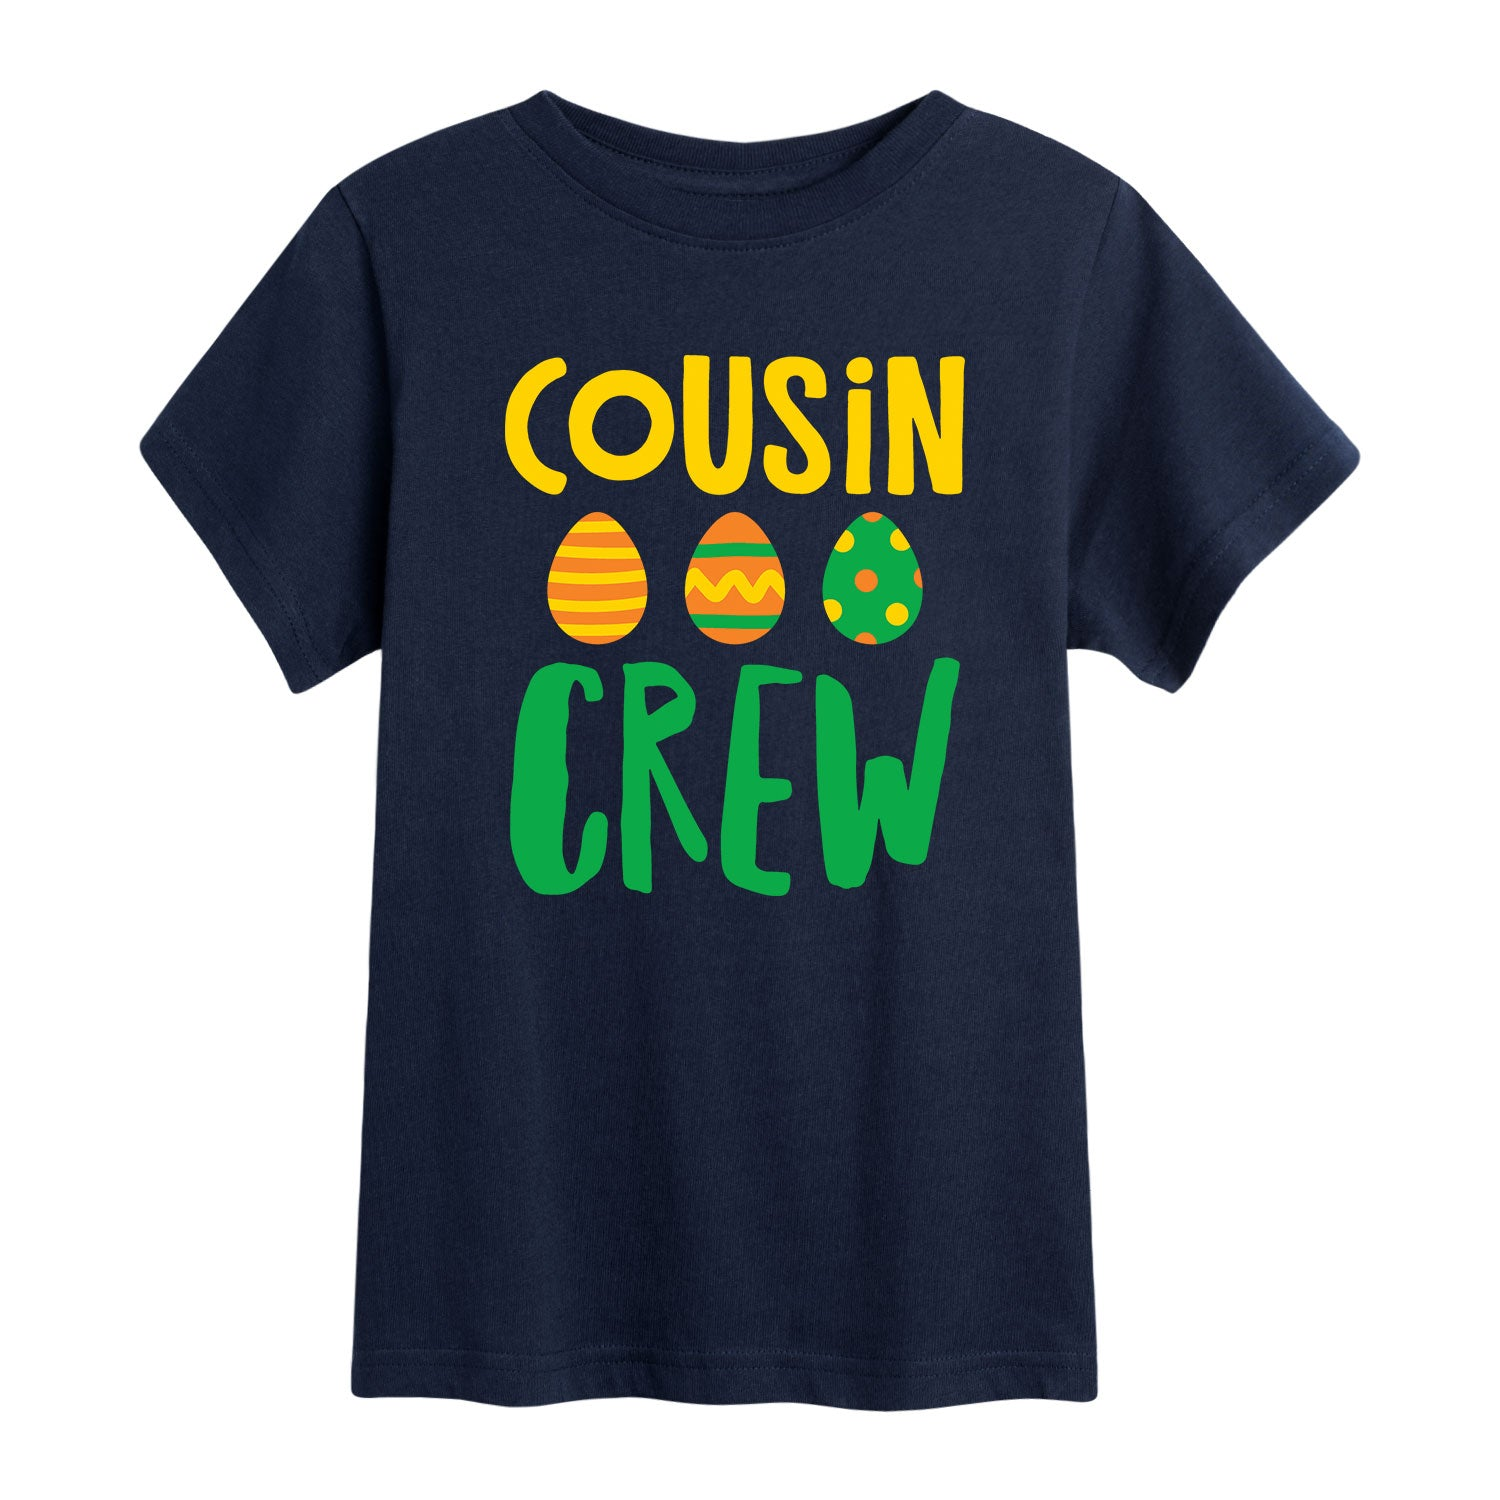 Cousin Crew Easter - Youth Short Sleeve T-Shirt